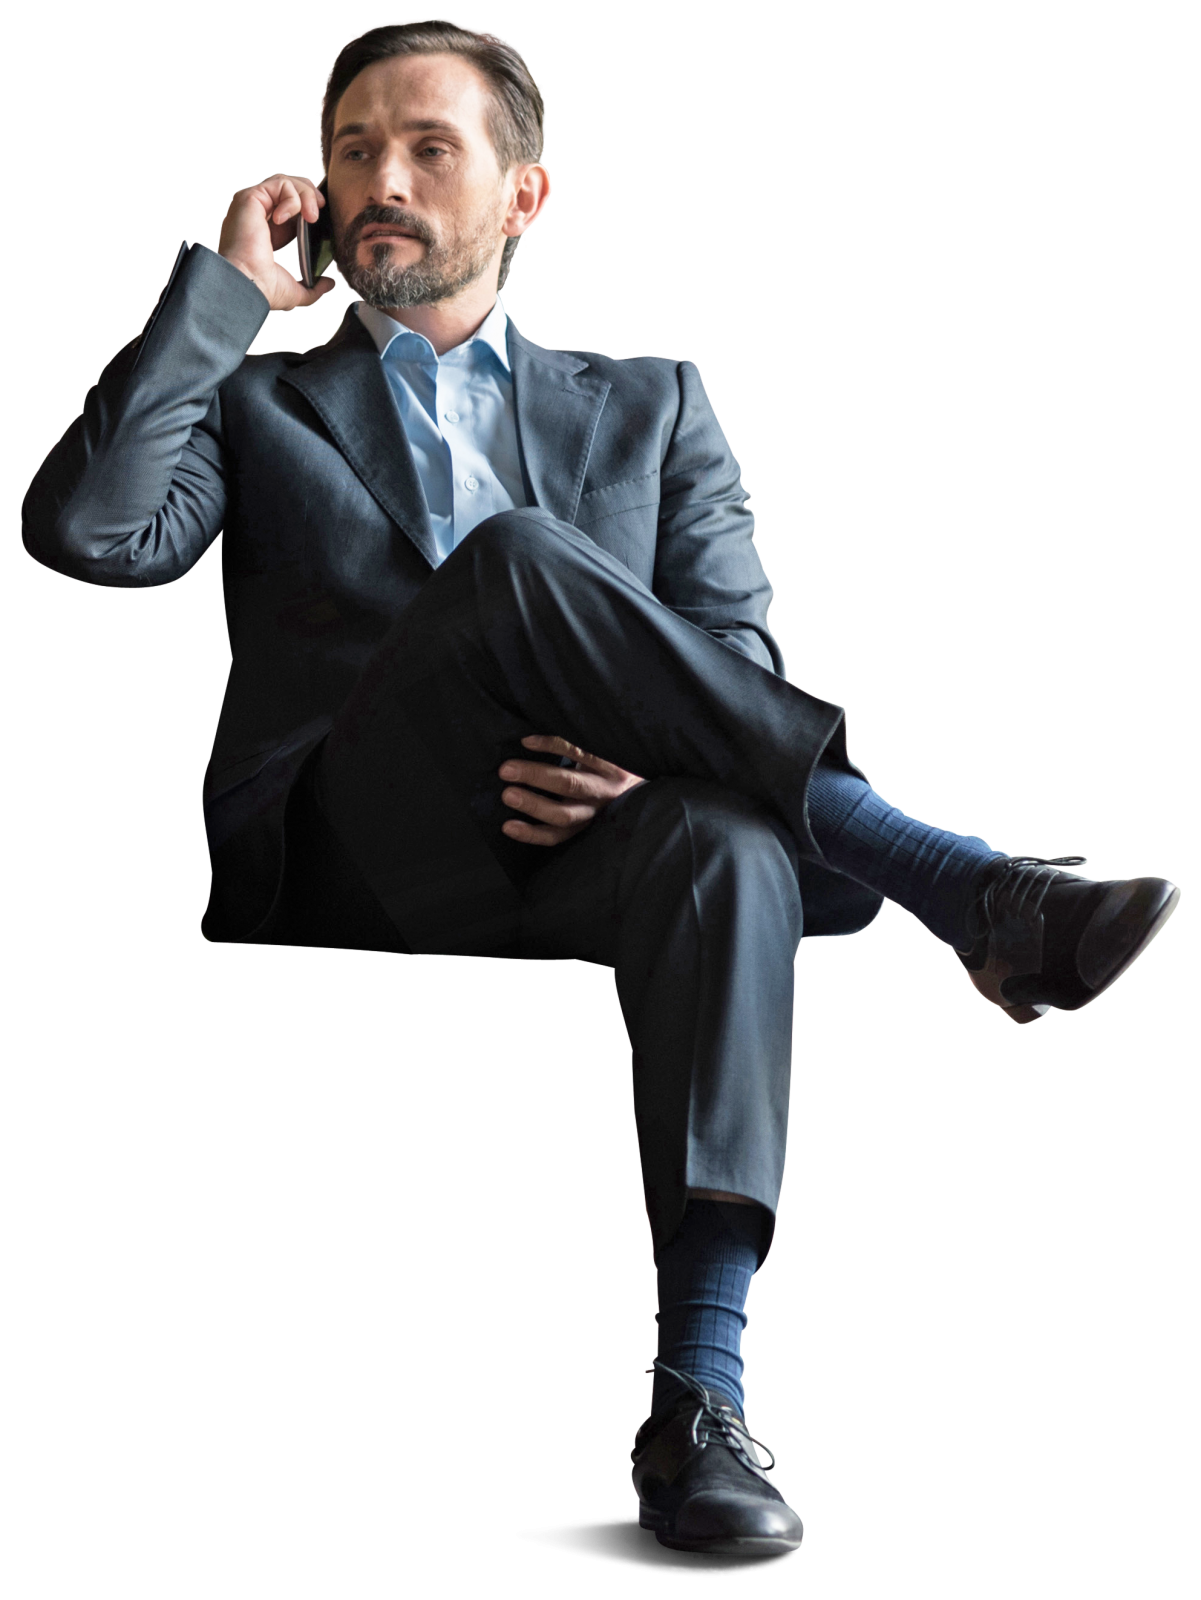 office businessman sitting with phone cut out #12348